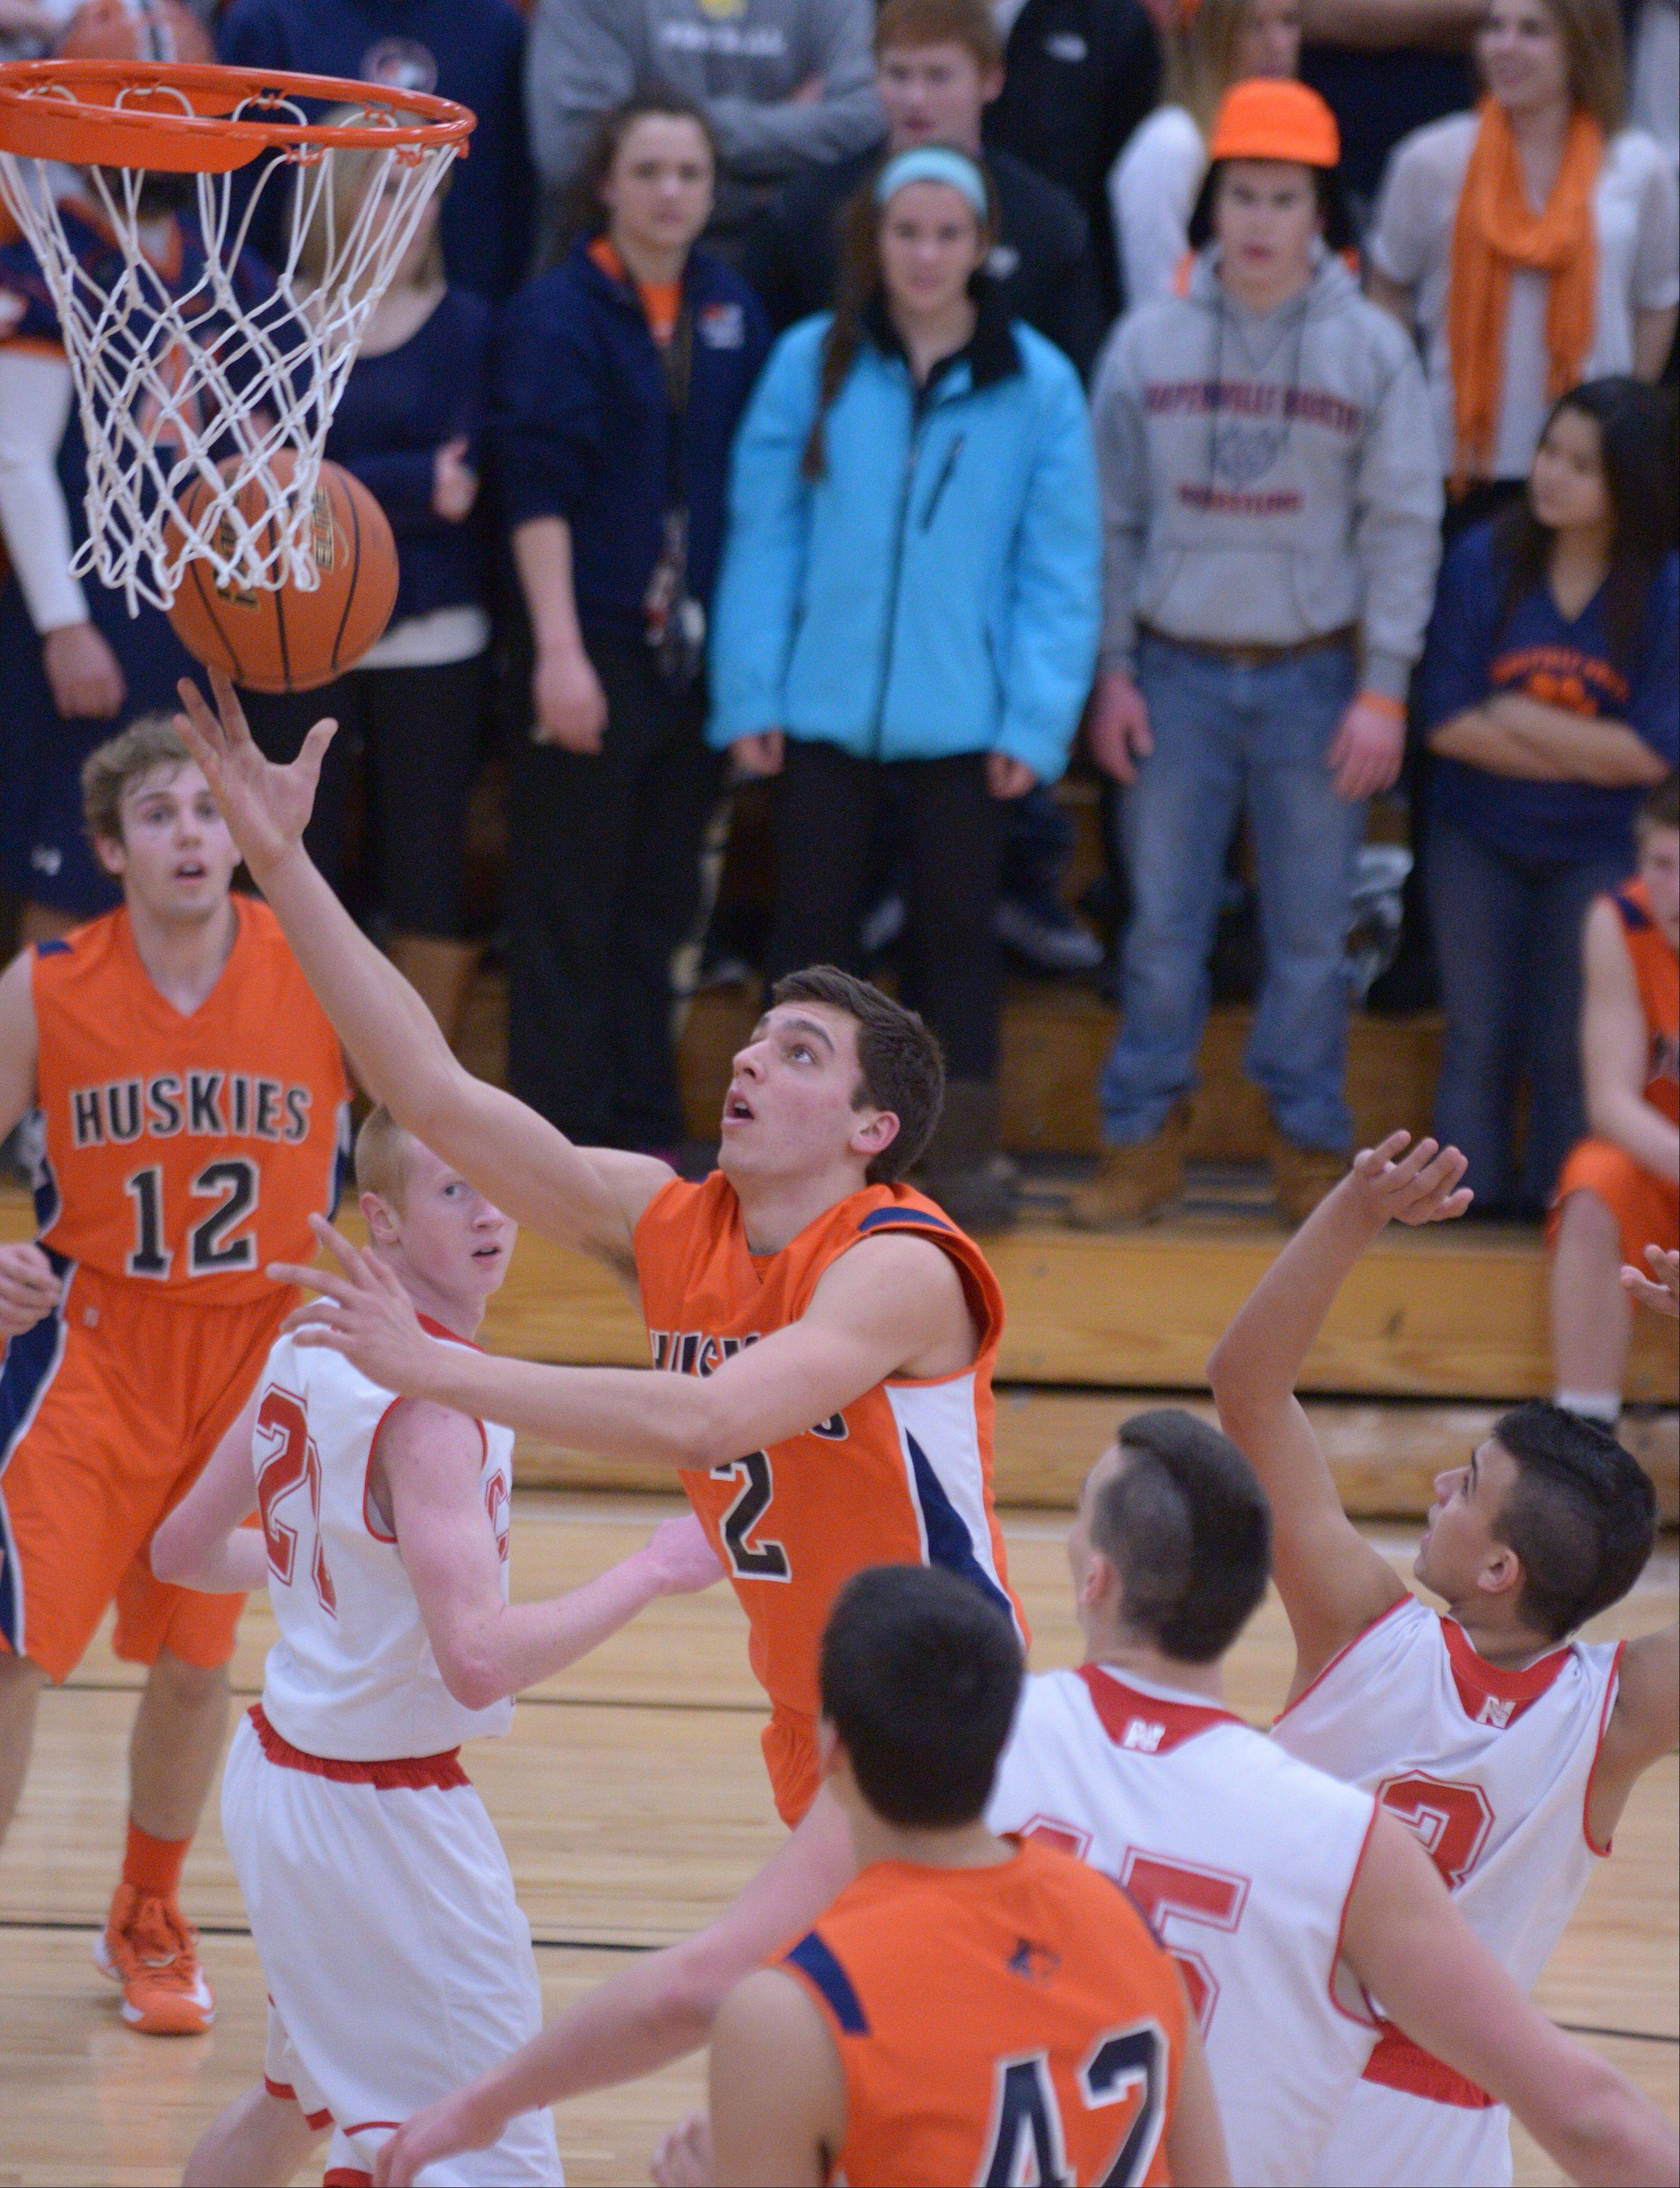 Anthony Rehayem of Naperville North takes one to the net during the Naperville North vs. Naperville Central at Class 4A Benet boys basketball regional semifinals game Thursday.